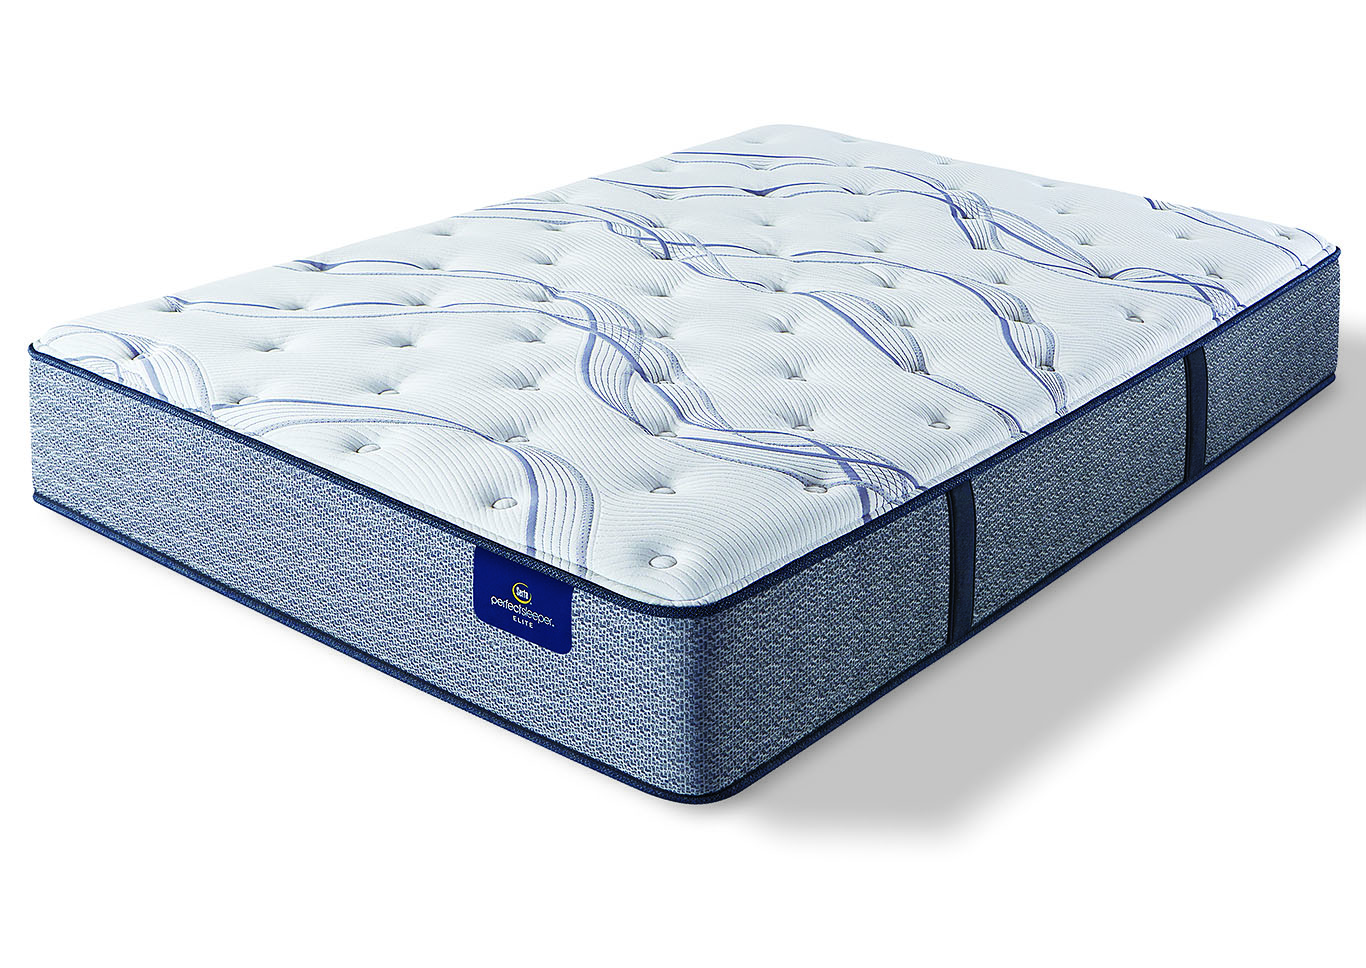 Trelleburg II Plush Queen Mattress,Serta